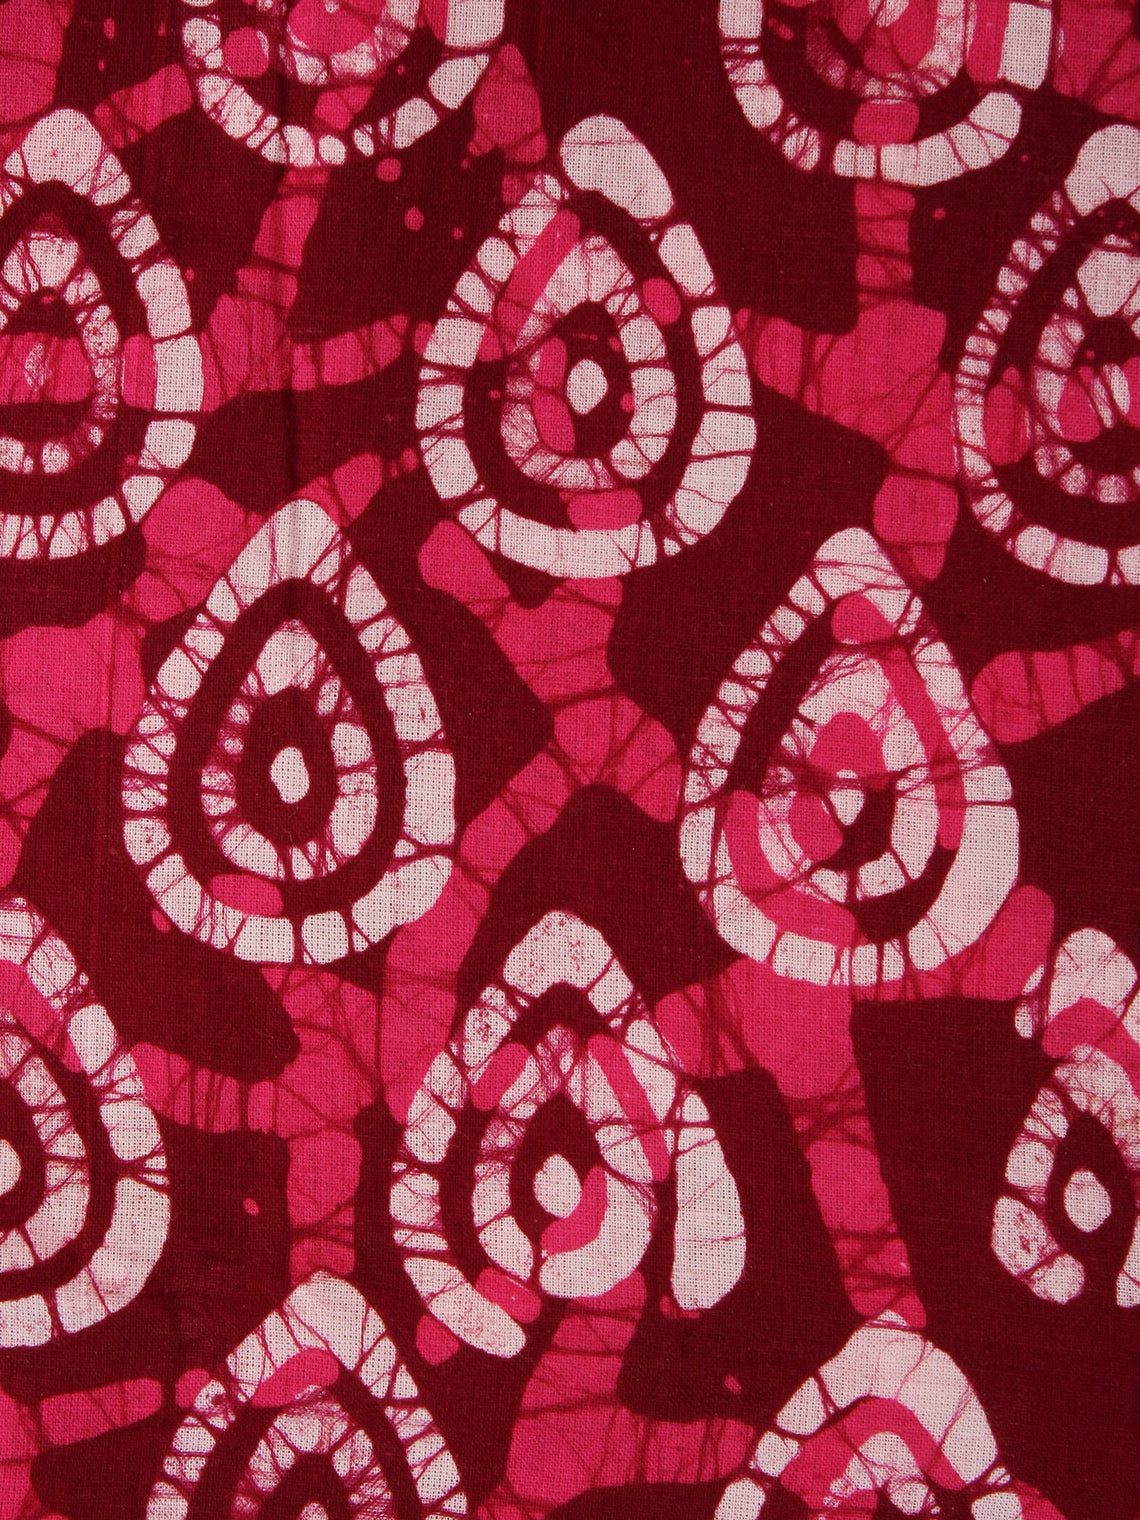 Maroon Pink White Hand Block Printed Cotton Fabric Per Meter - F0916333